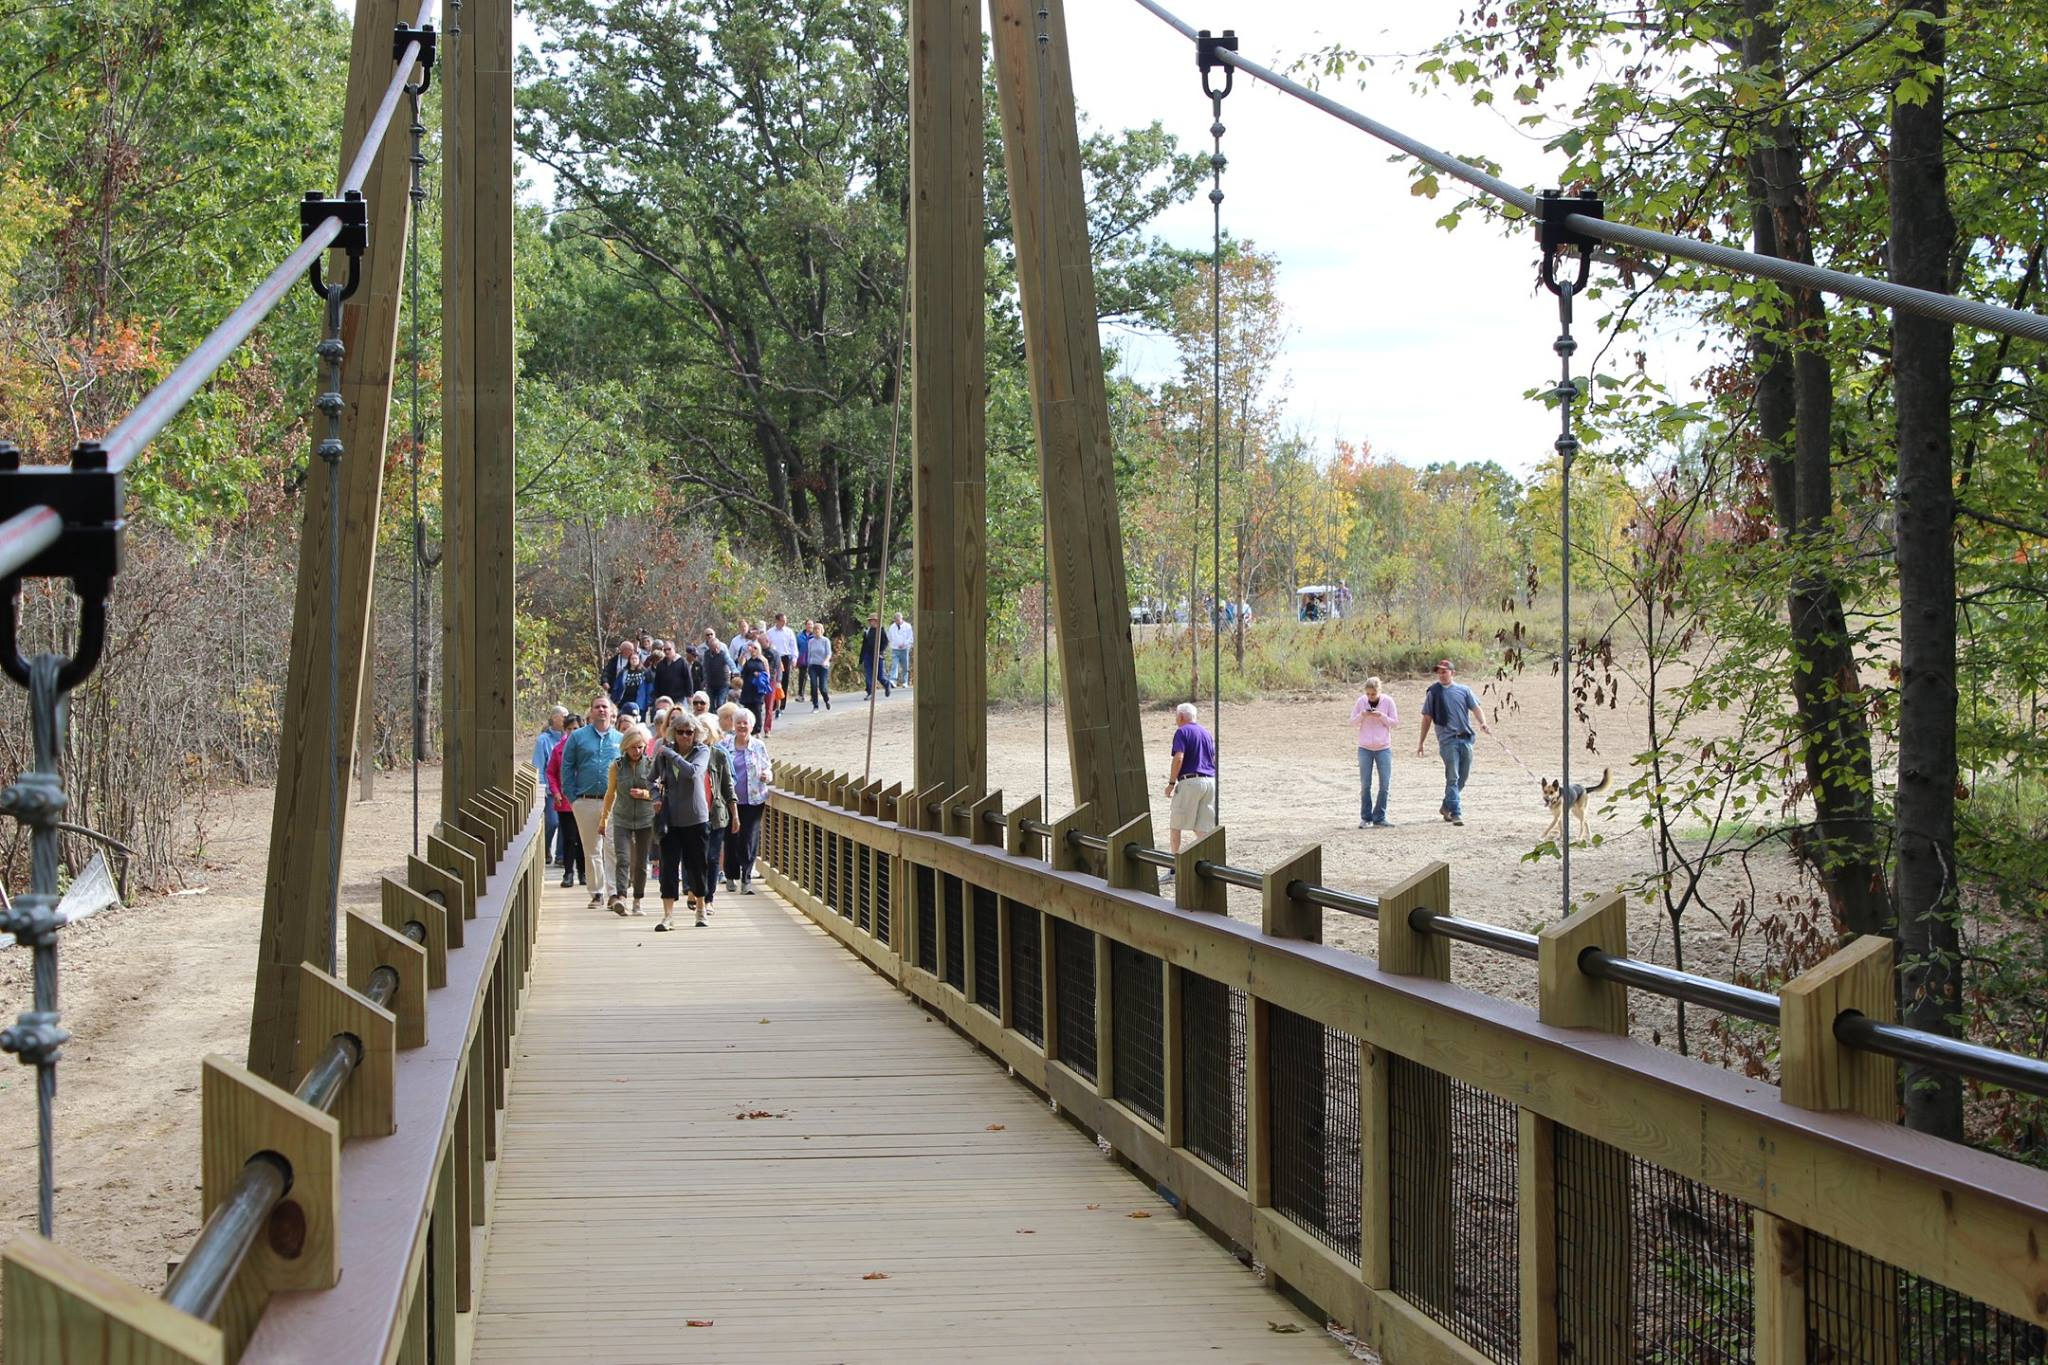 Ottawa County Parks Suspension Bridge - Photo Courtesy of Ottawa County Parks